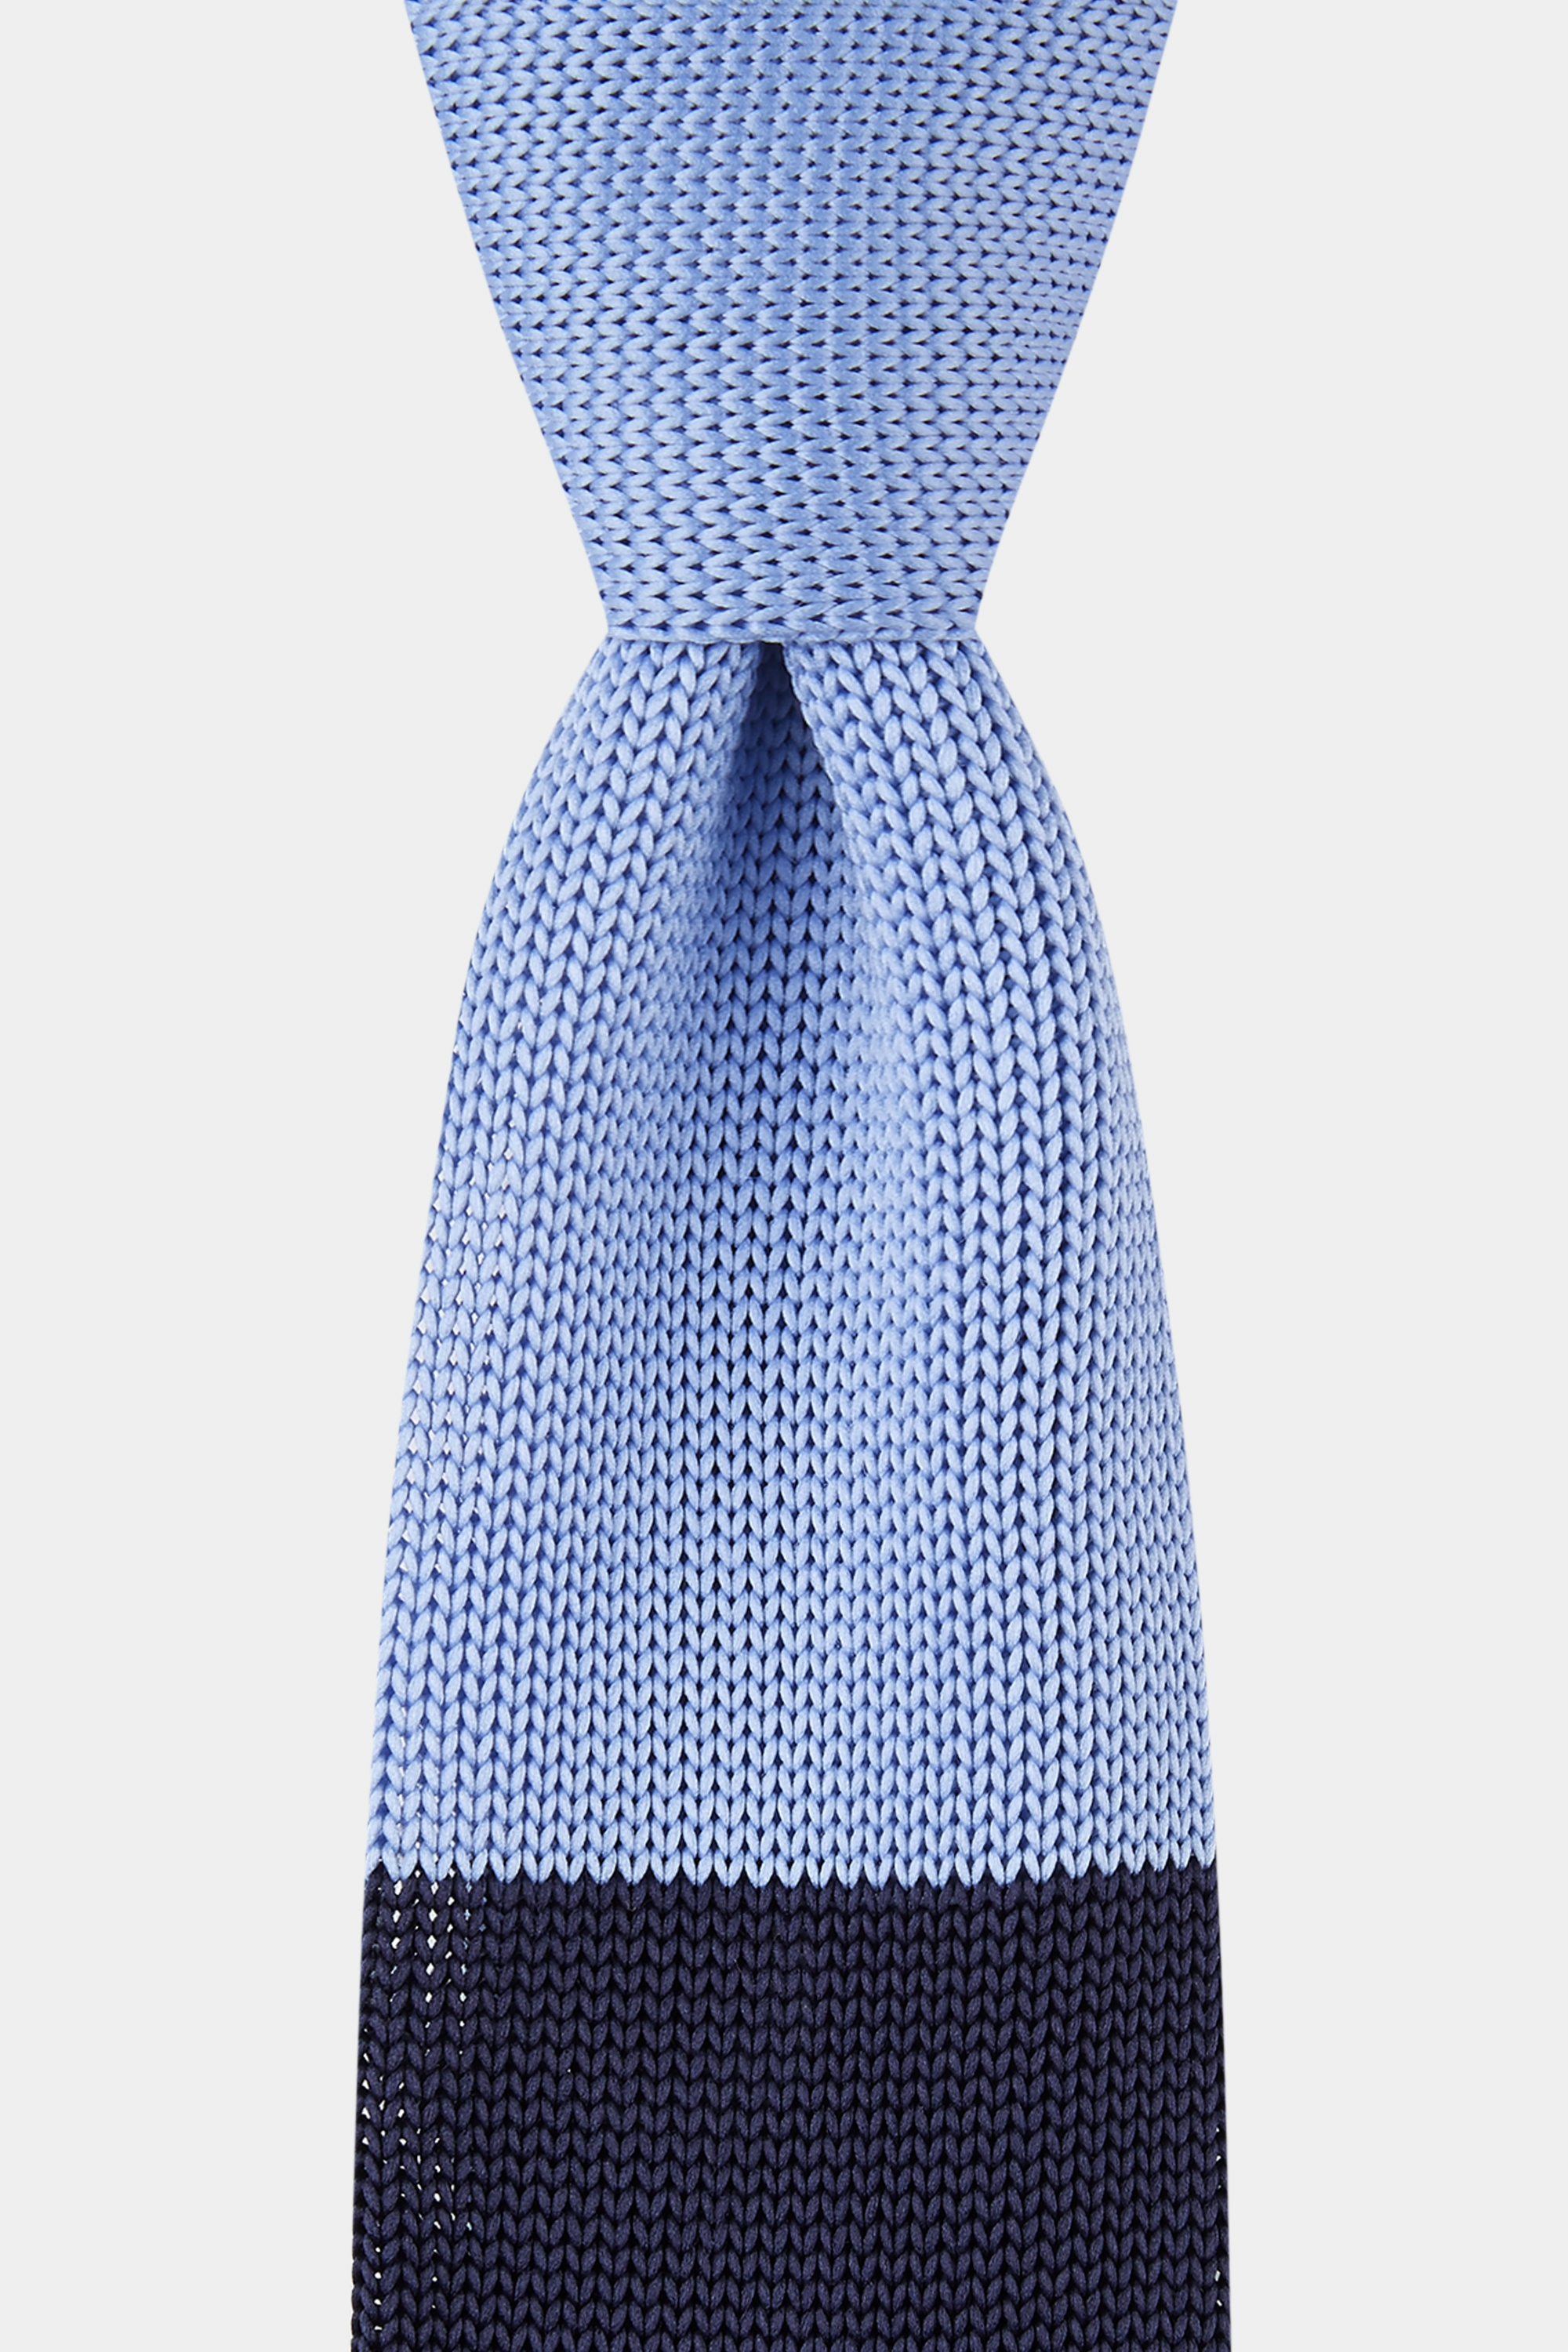 Moss Bros Moss London Cornflower Blue & Navy Block Knitted Tie